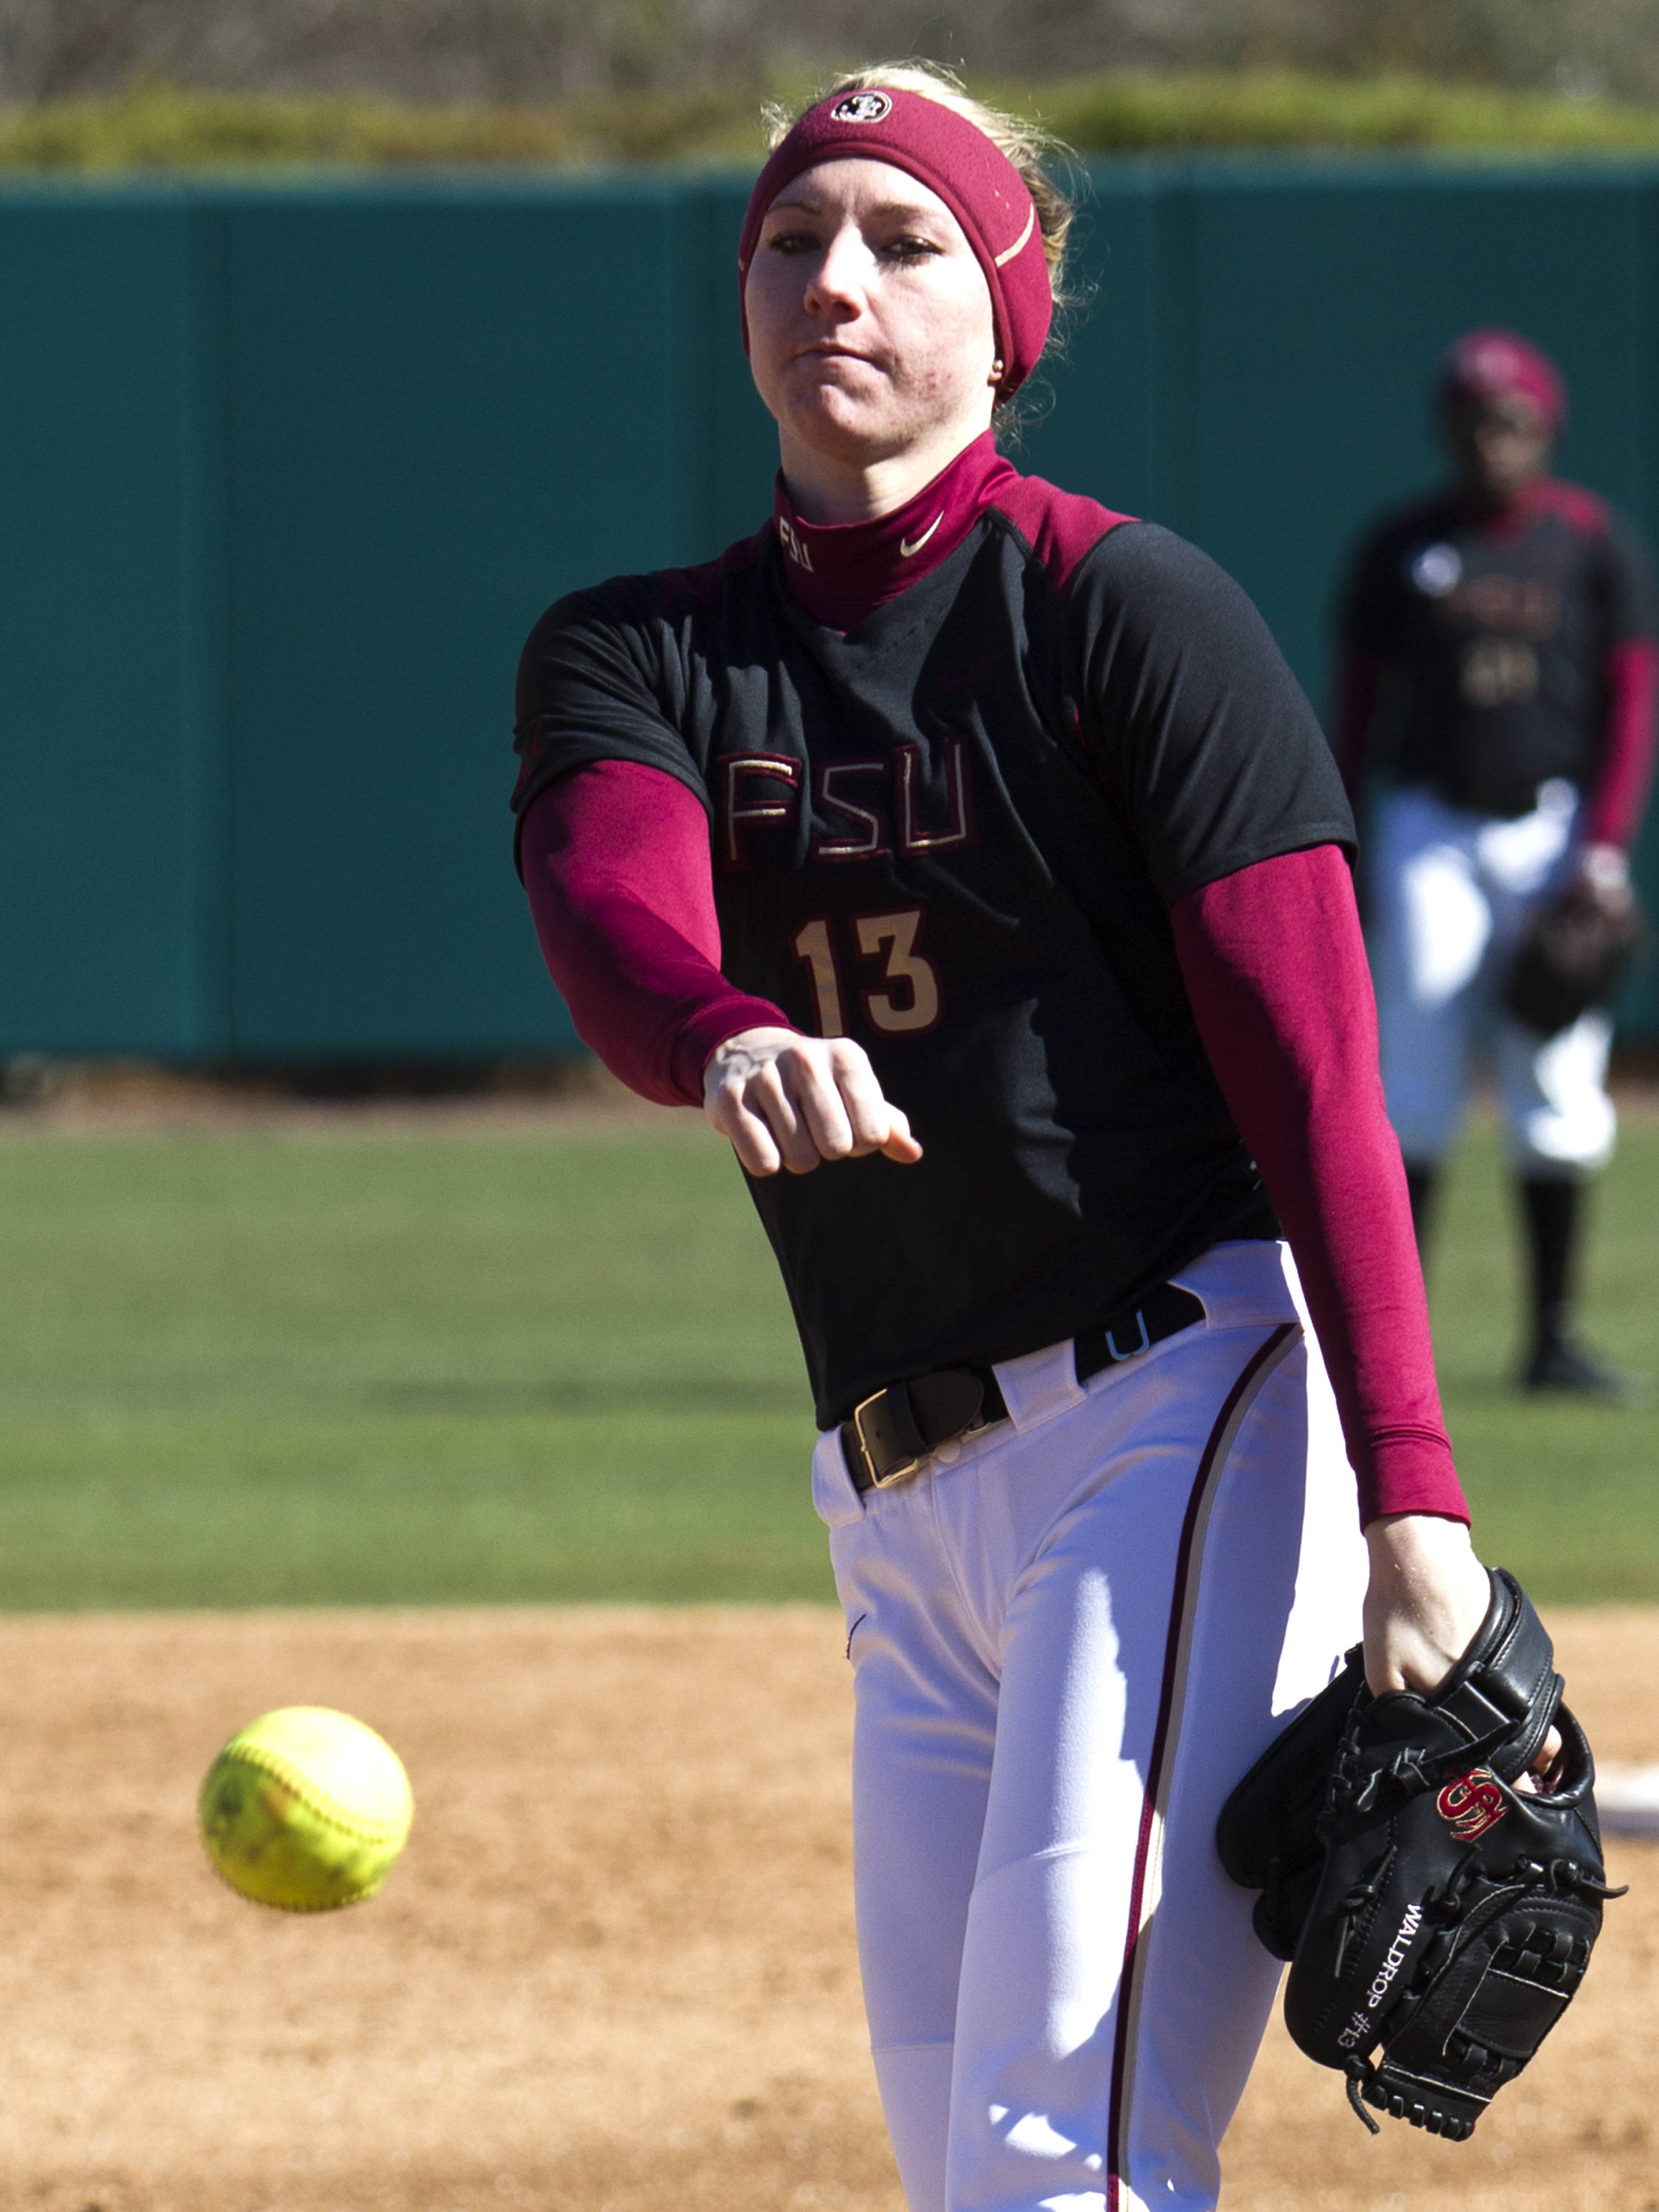 lacey Waldrop (13), FSU vs Tulsa, 02/17/13. (Photo by Steve Musco)